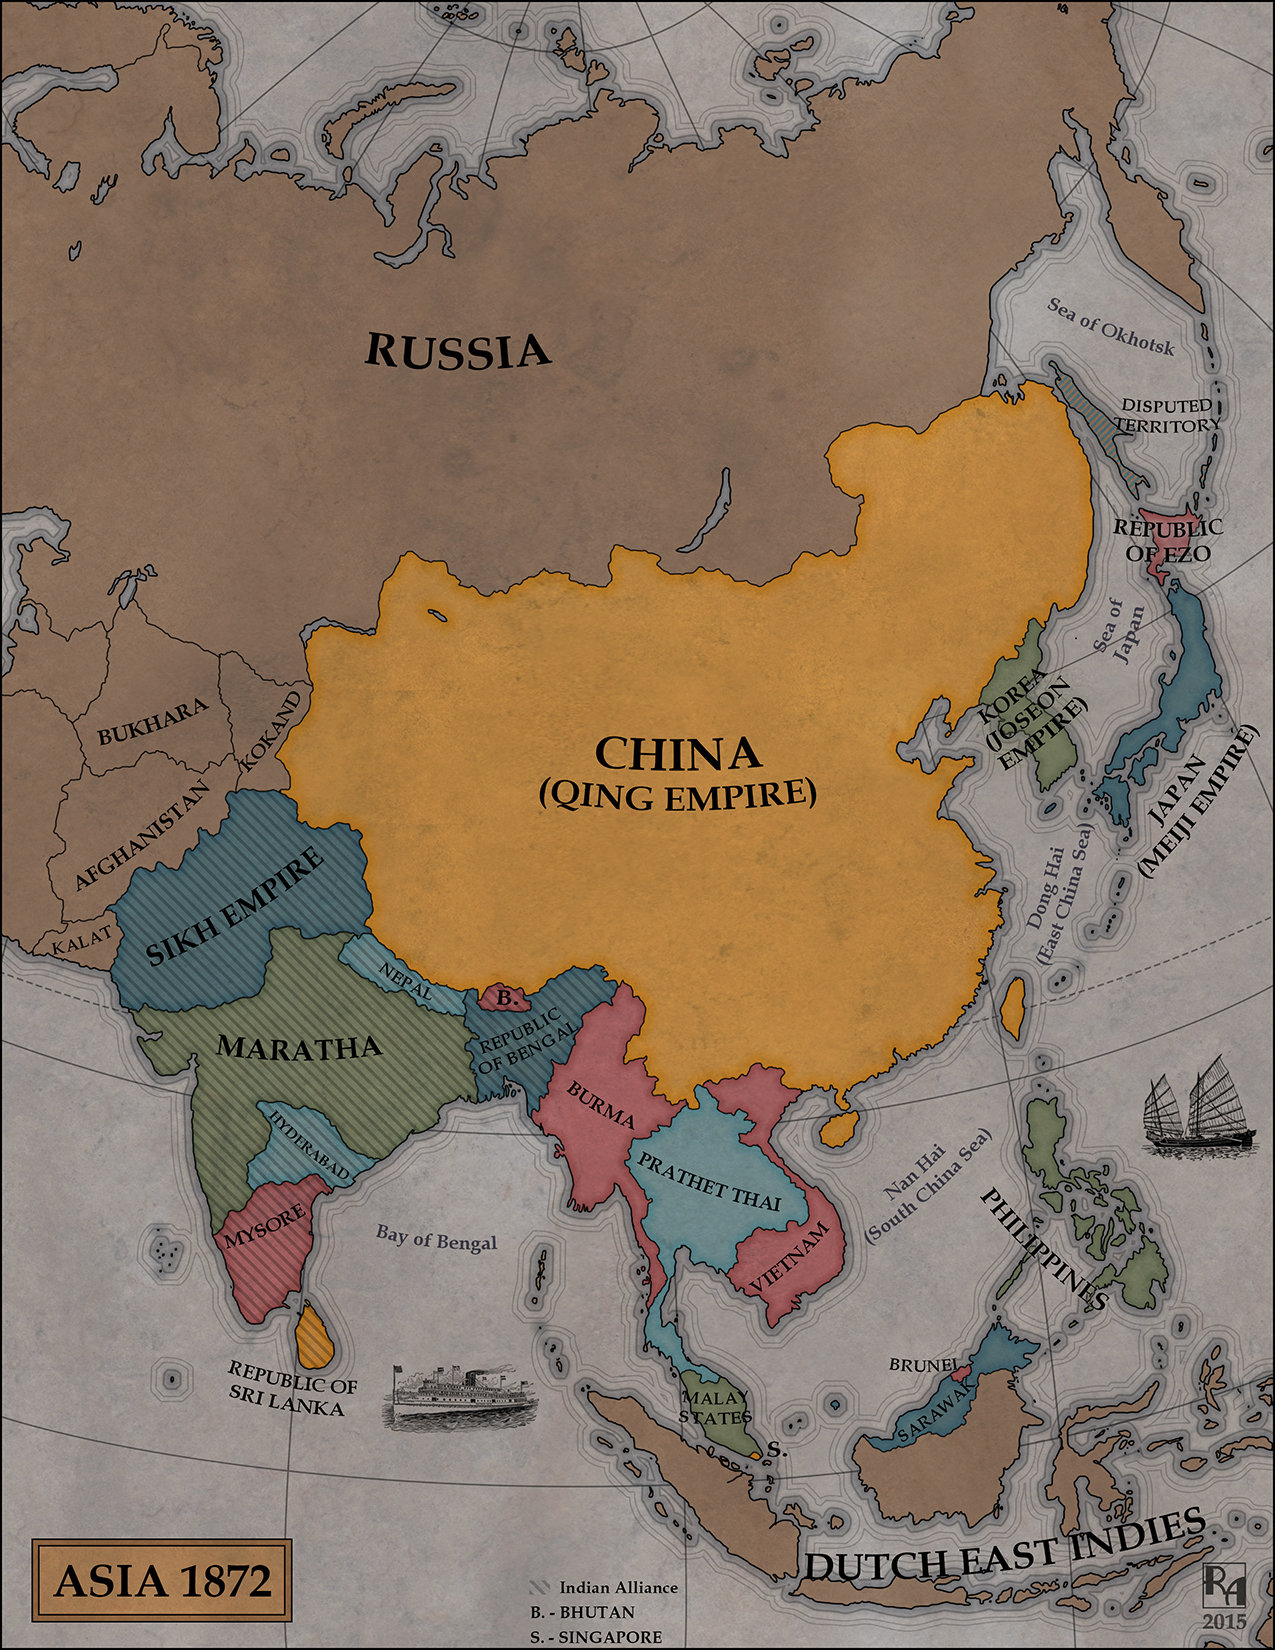 Robert altbauer steamscapes asia map 2